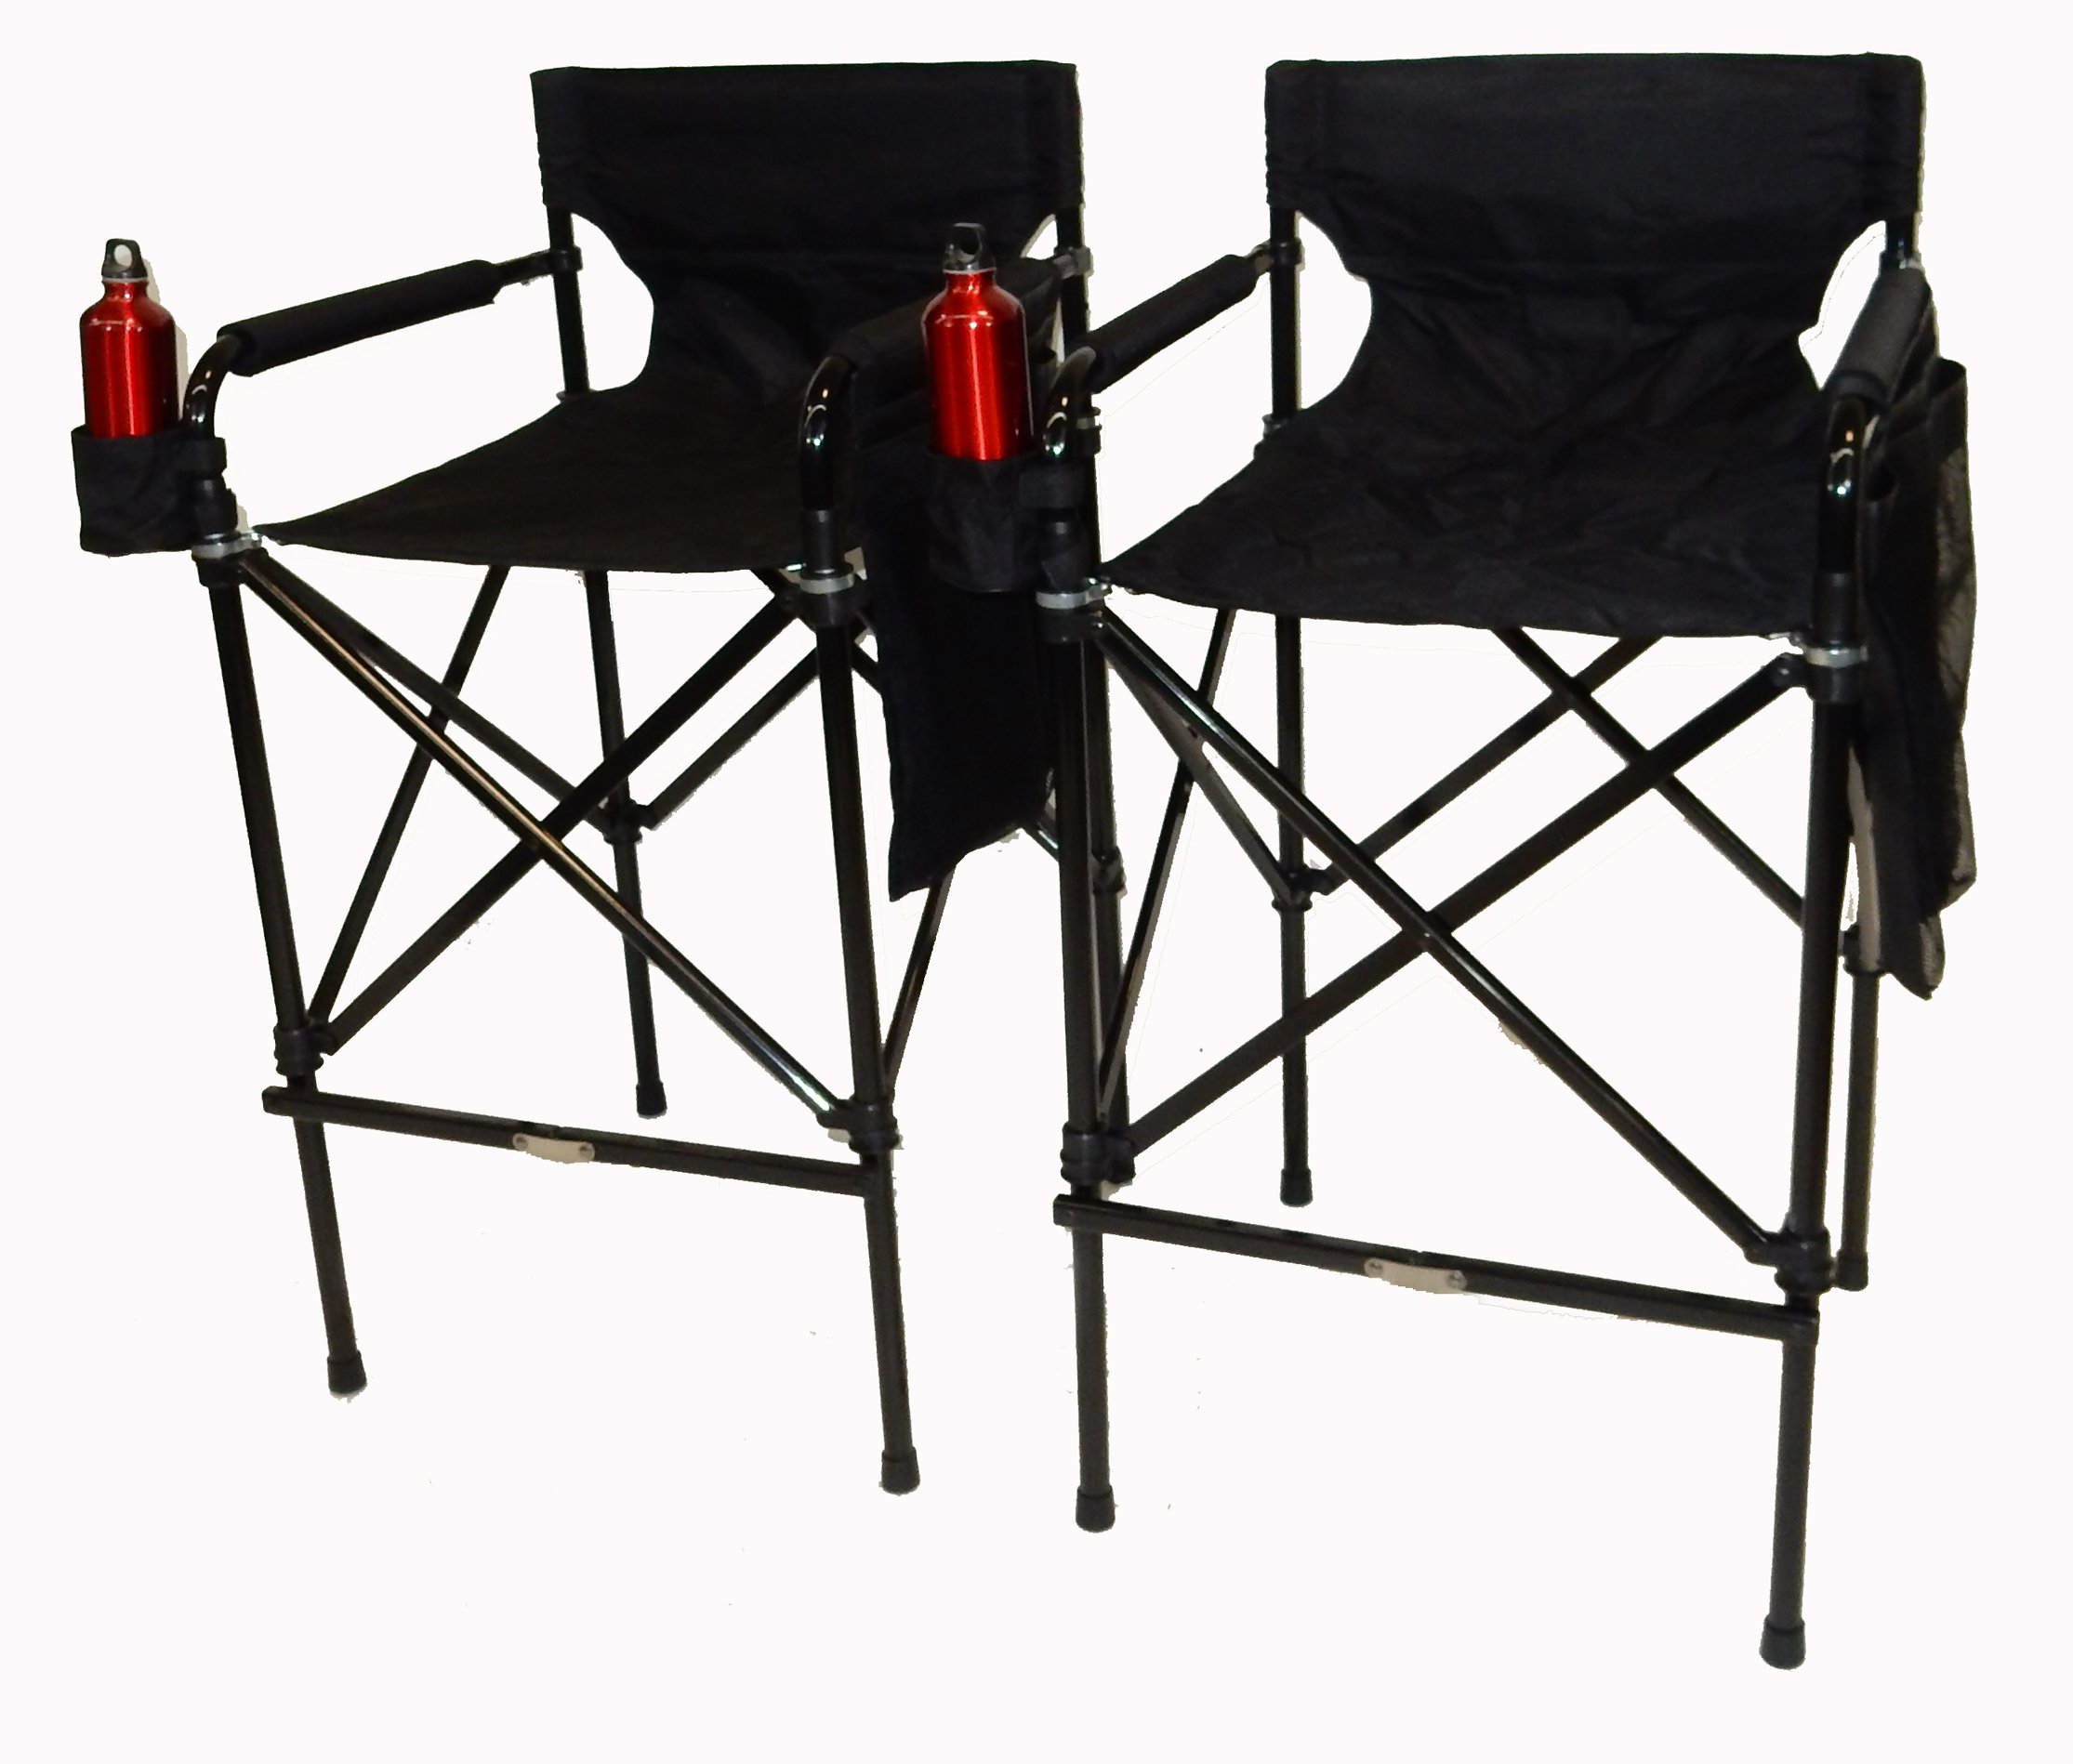 TWO PACK World Outdoor Products Award Winning Black Beauty TELESCOPIC Tall Folding Directors Chairs with Matching Carry Bag.